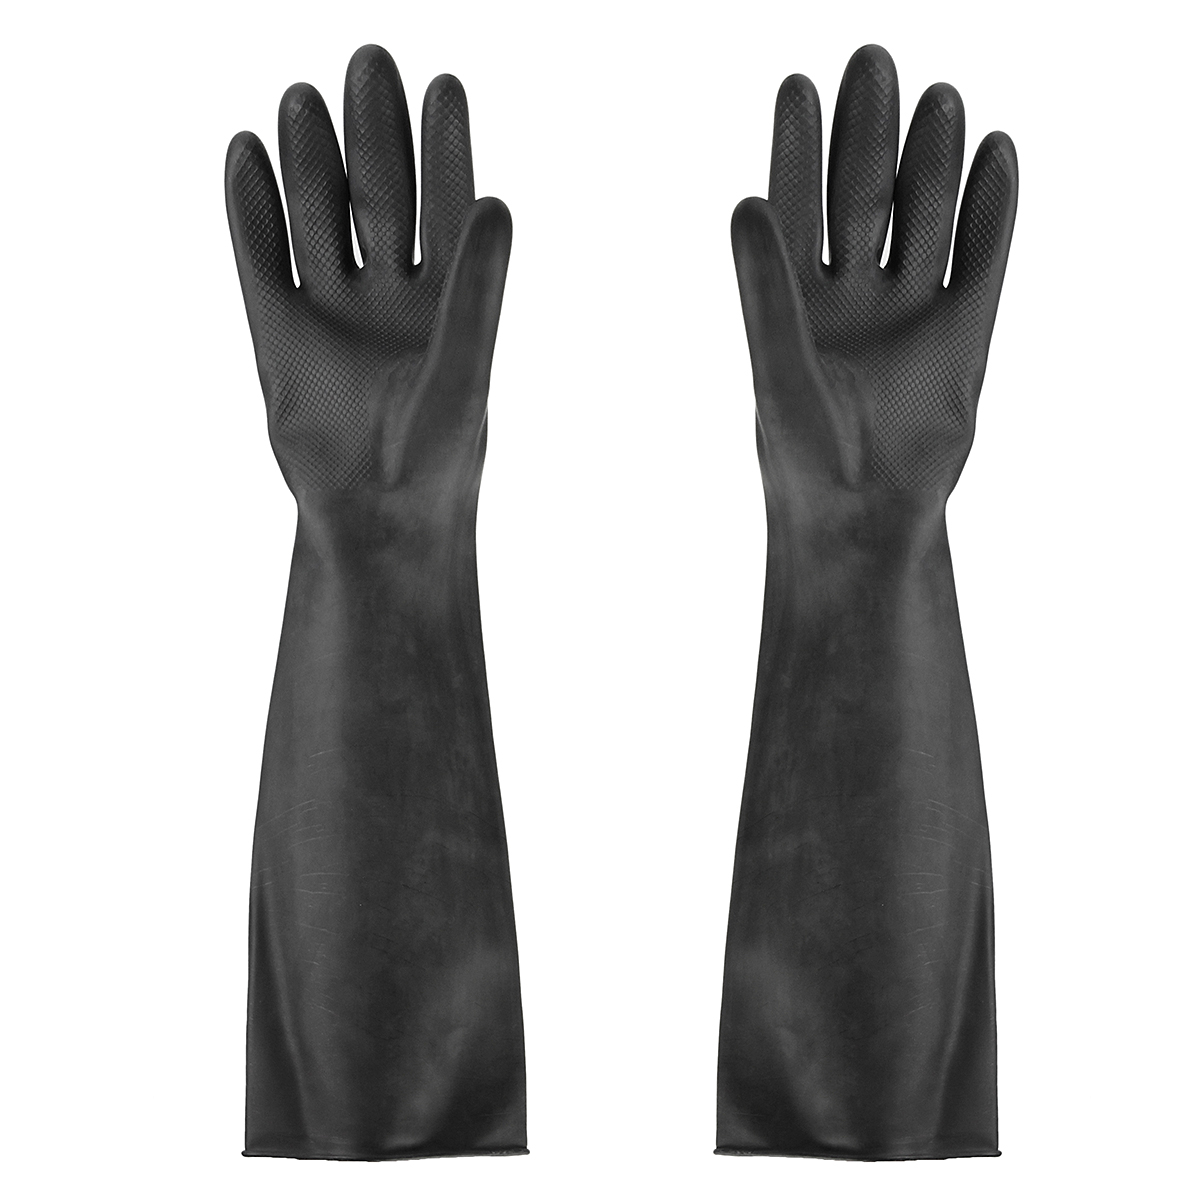 60cm Safety Gloves NEW Elbow-Long Industry Anti Acid Alkali Chemical Resistant Rubber Work Gloves Safety Glove Black 23.6inch